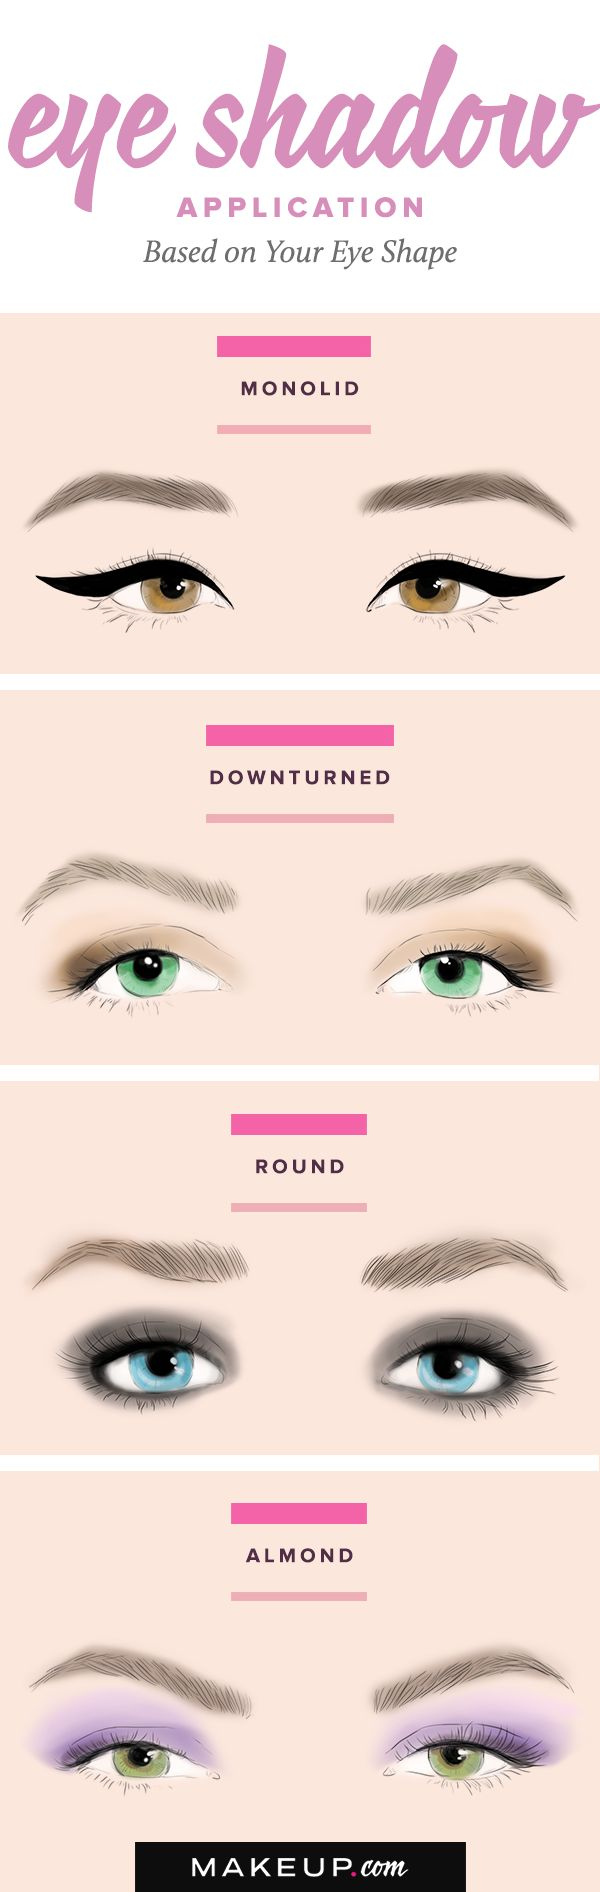 Find This Pin And More On Makeup And Beauty Get The Perfect Eye Shadow  Application